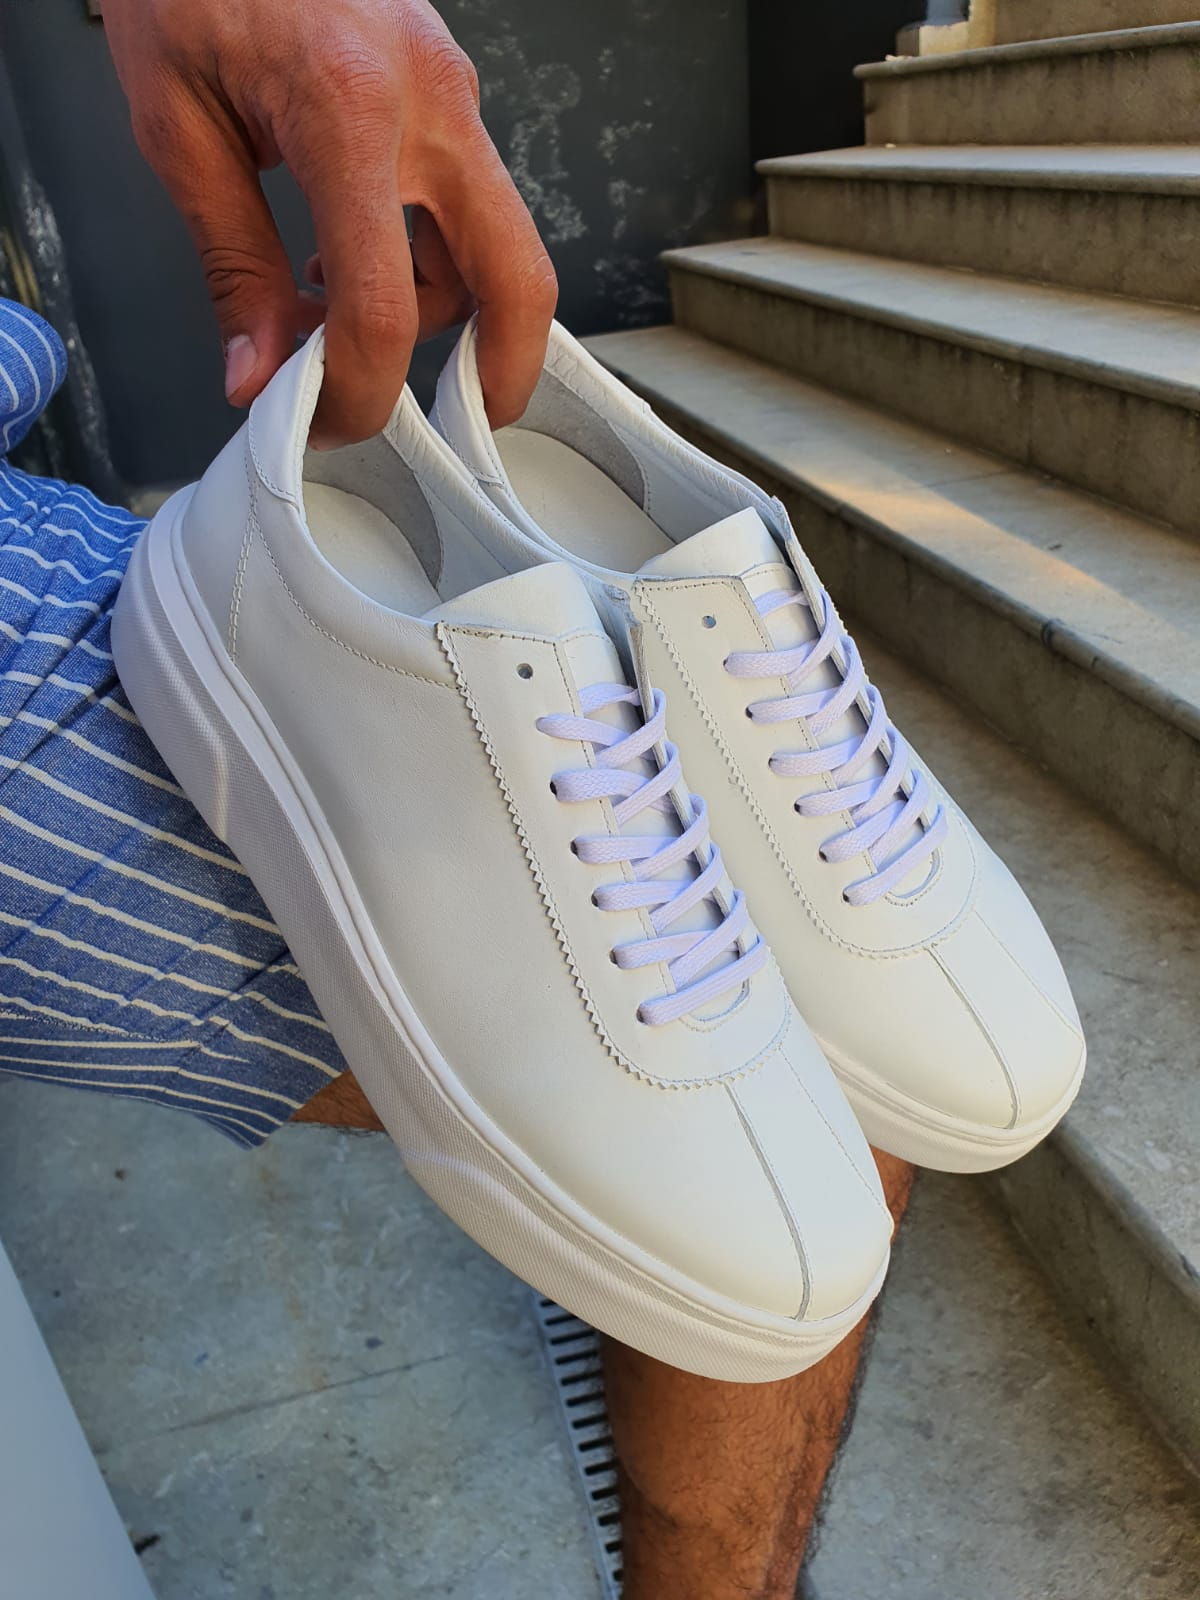 Sneakers by GentWith.com